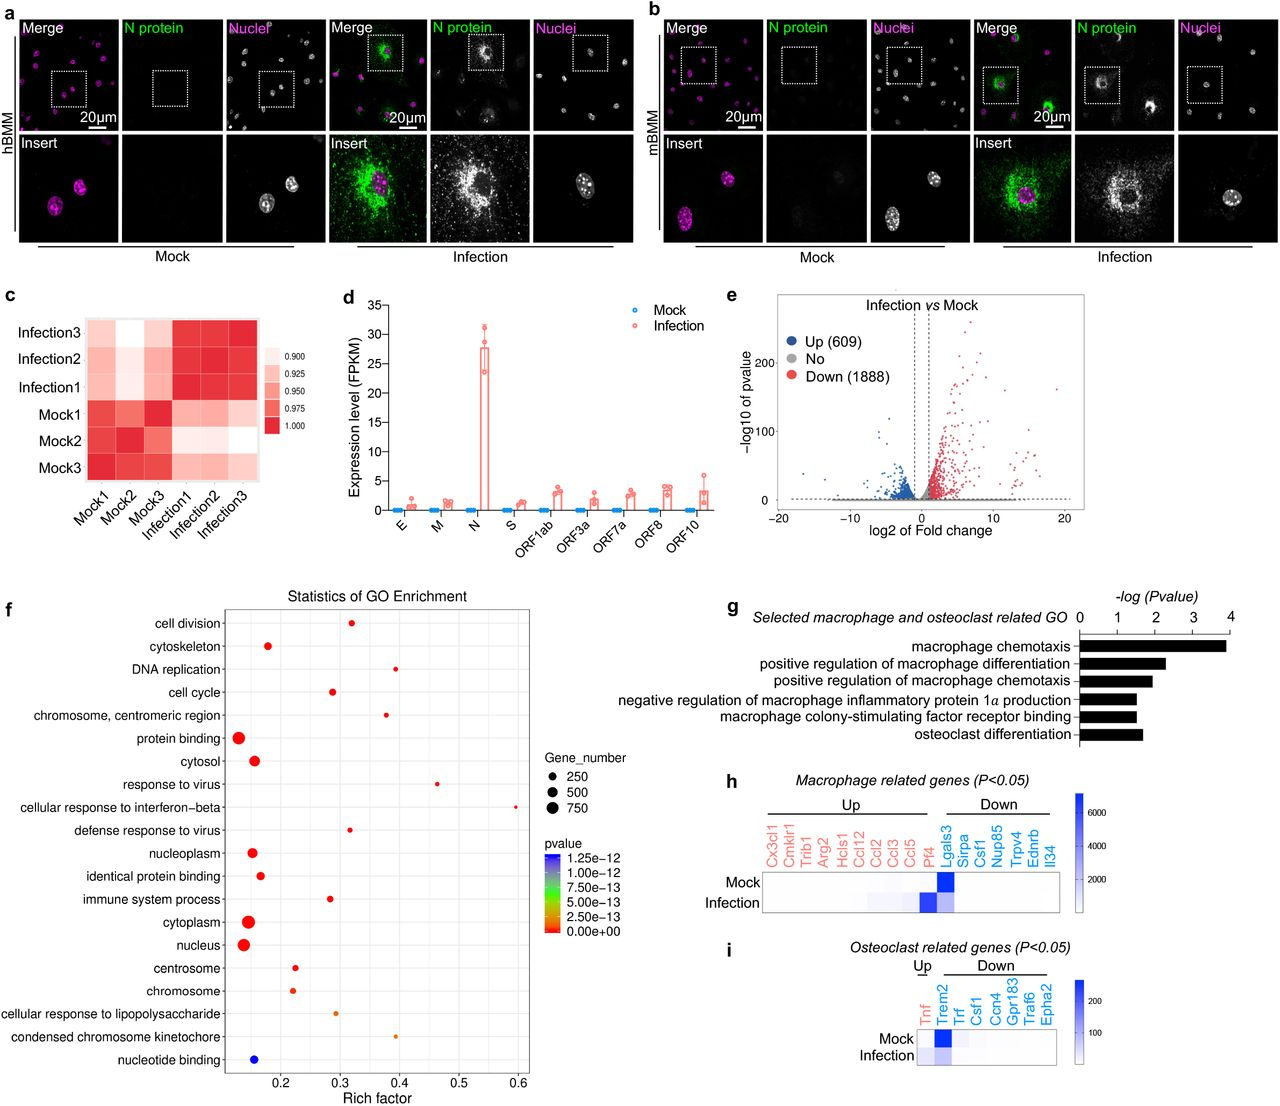 Authentic SARS-CoV-2 infects bone marrow-derived macrophages (BMMs). a-b , Confocal images showing the infection of SARS-CoV-2 in human ( a ) and mouse ( b ) BMMs. c-i , RNA-Seq analysis of SARS-CoV-2 infection in mouse BMMs. c , Heat map showing the correlation analysis of the SMART RNA-Seq results. d , Analysis of the expression of viral genes. e , Volcano plot showing the profile of altered gene expression. f , Top 20 enriched gene ontology (GO) terms. g , Significantly enriched GO terms on macrophage and osteoclast-related genes. h , Altered macrophage-related genes. i , Altered osteoclast-related genes.